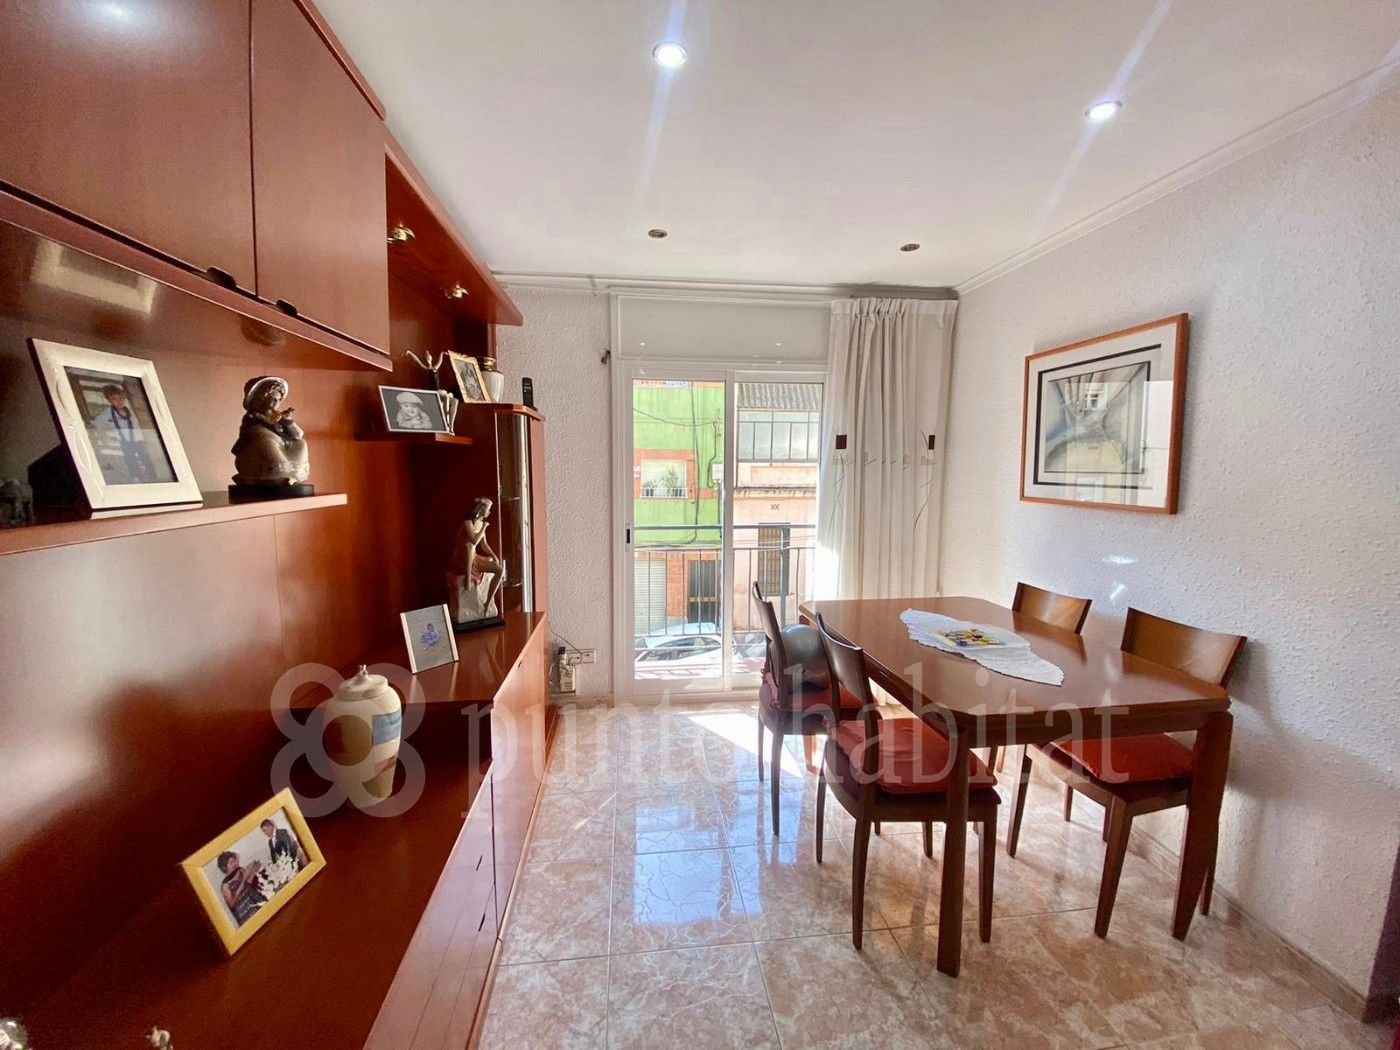 Flat in Carrer simancas, 14. Disponibilidad inmediata.